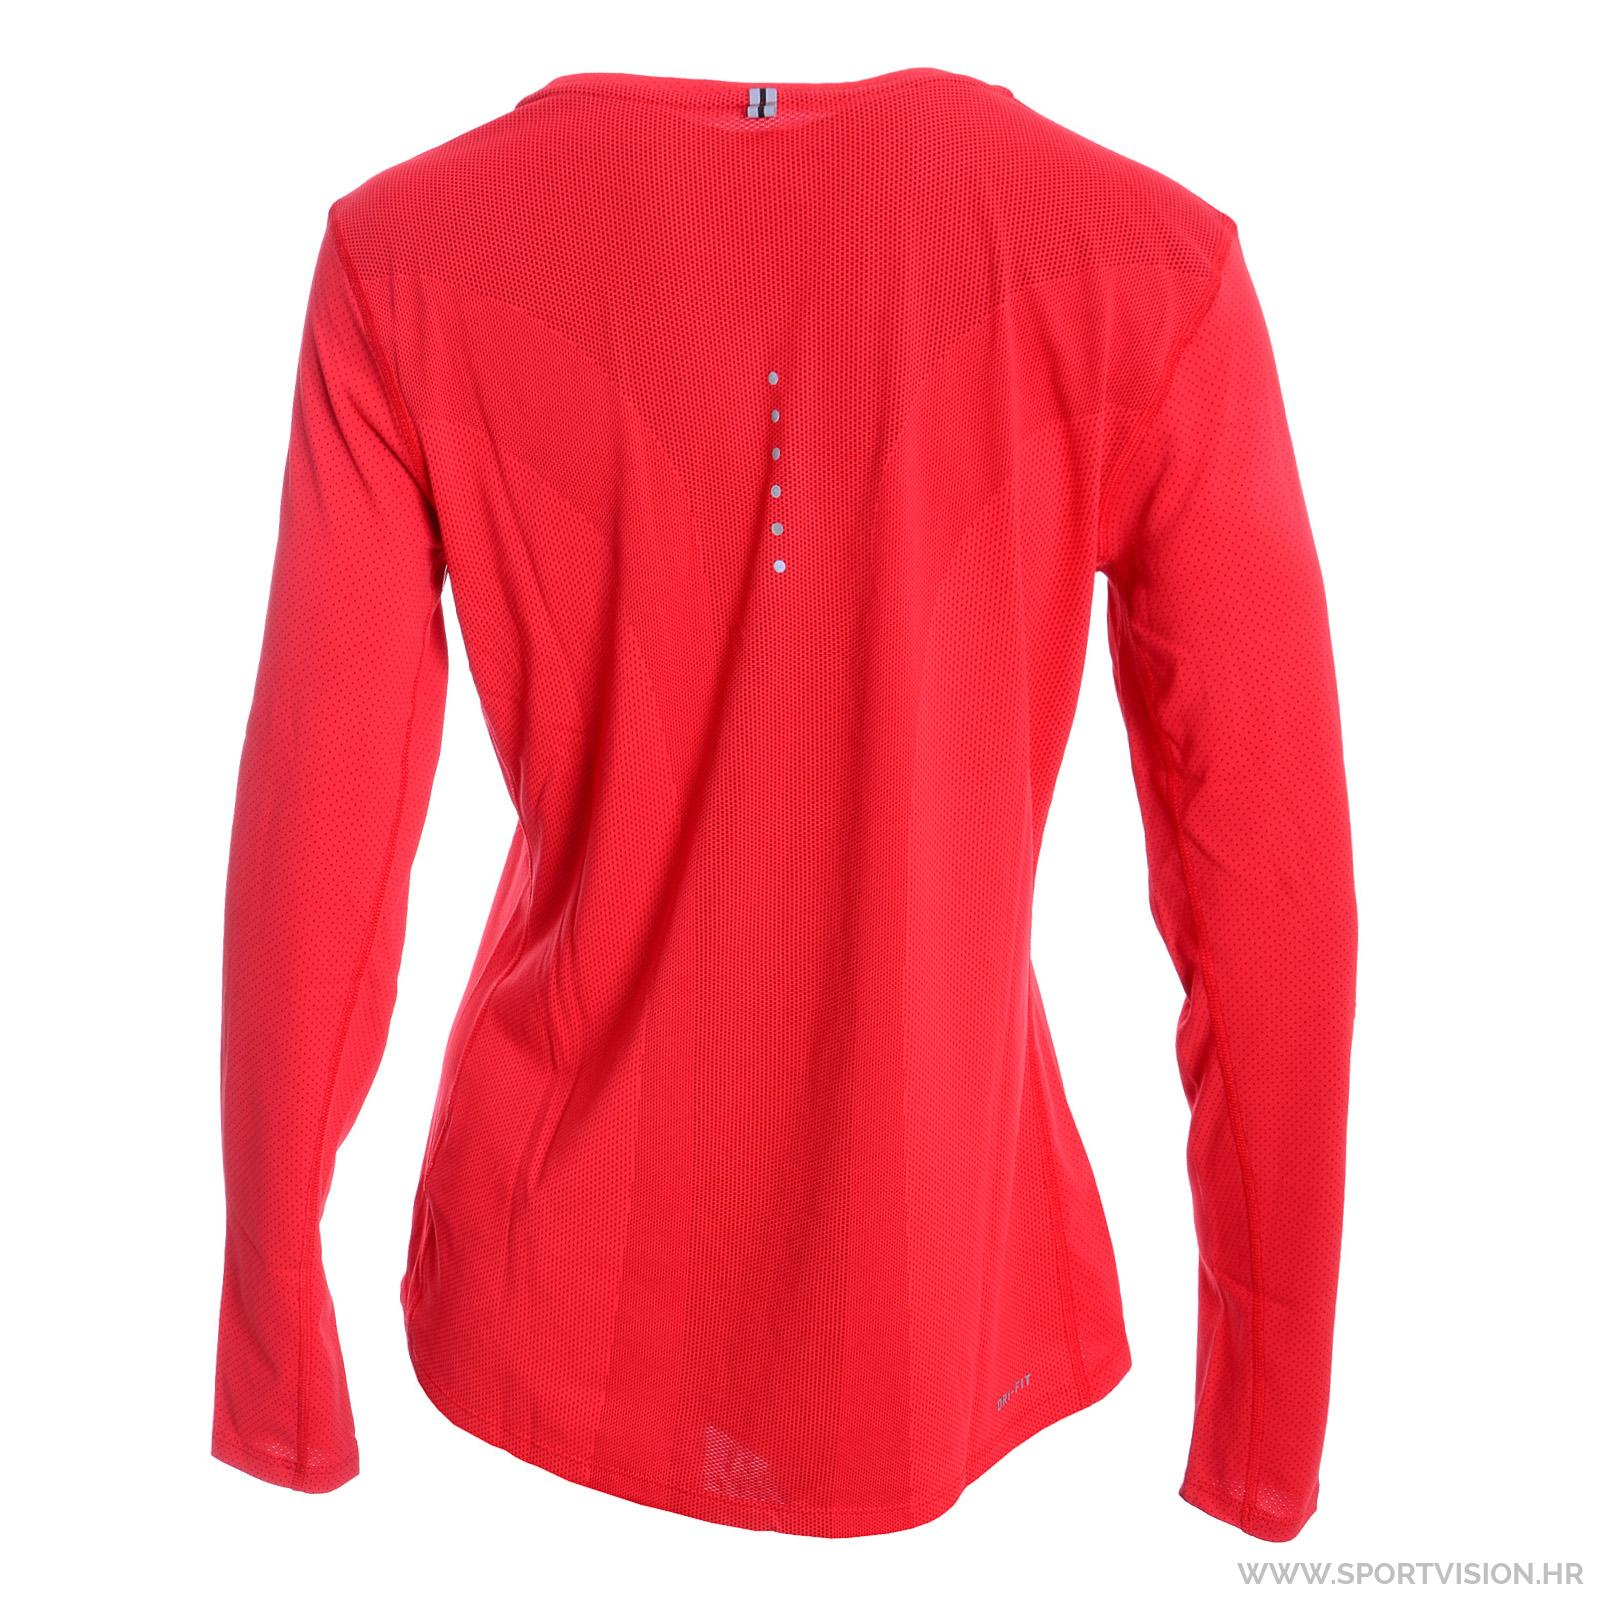 Dri fit contour long sleeve 644707 696 sport vision for Under armour dri fit long sleeve shirts